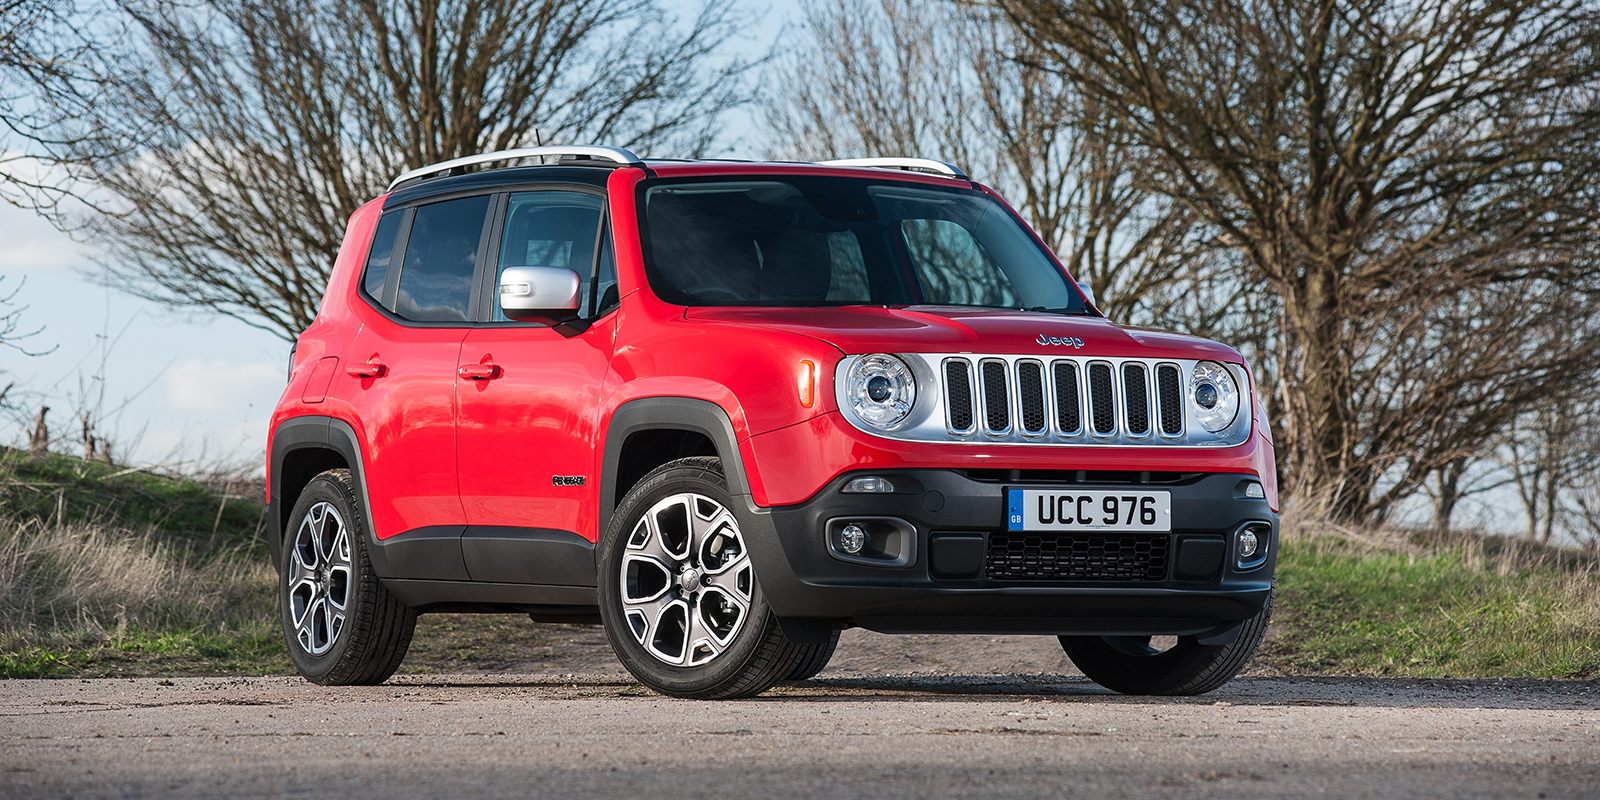 Jeep Renegade Colors >> Jeep Renegade Colours Guide And Prices Carwow